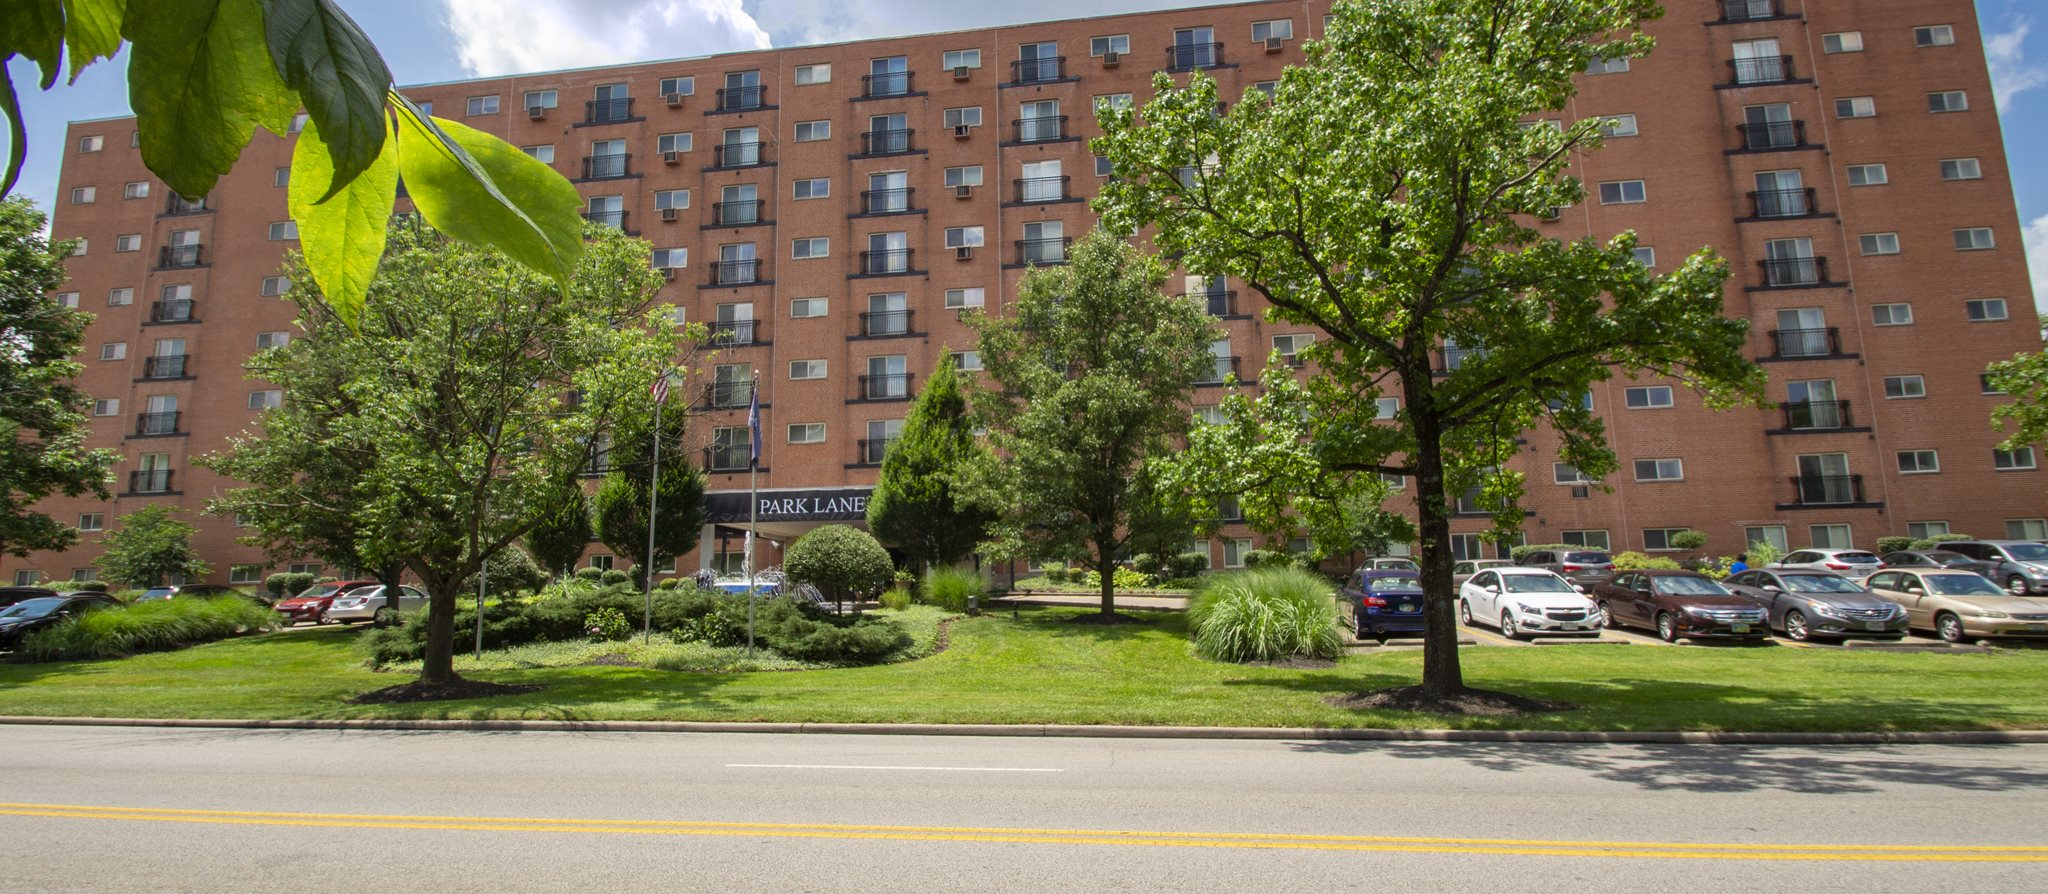 This is a photo of Park Lane Apartments in Cincinnati, Ohio from Victory Parkway.